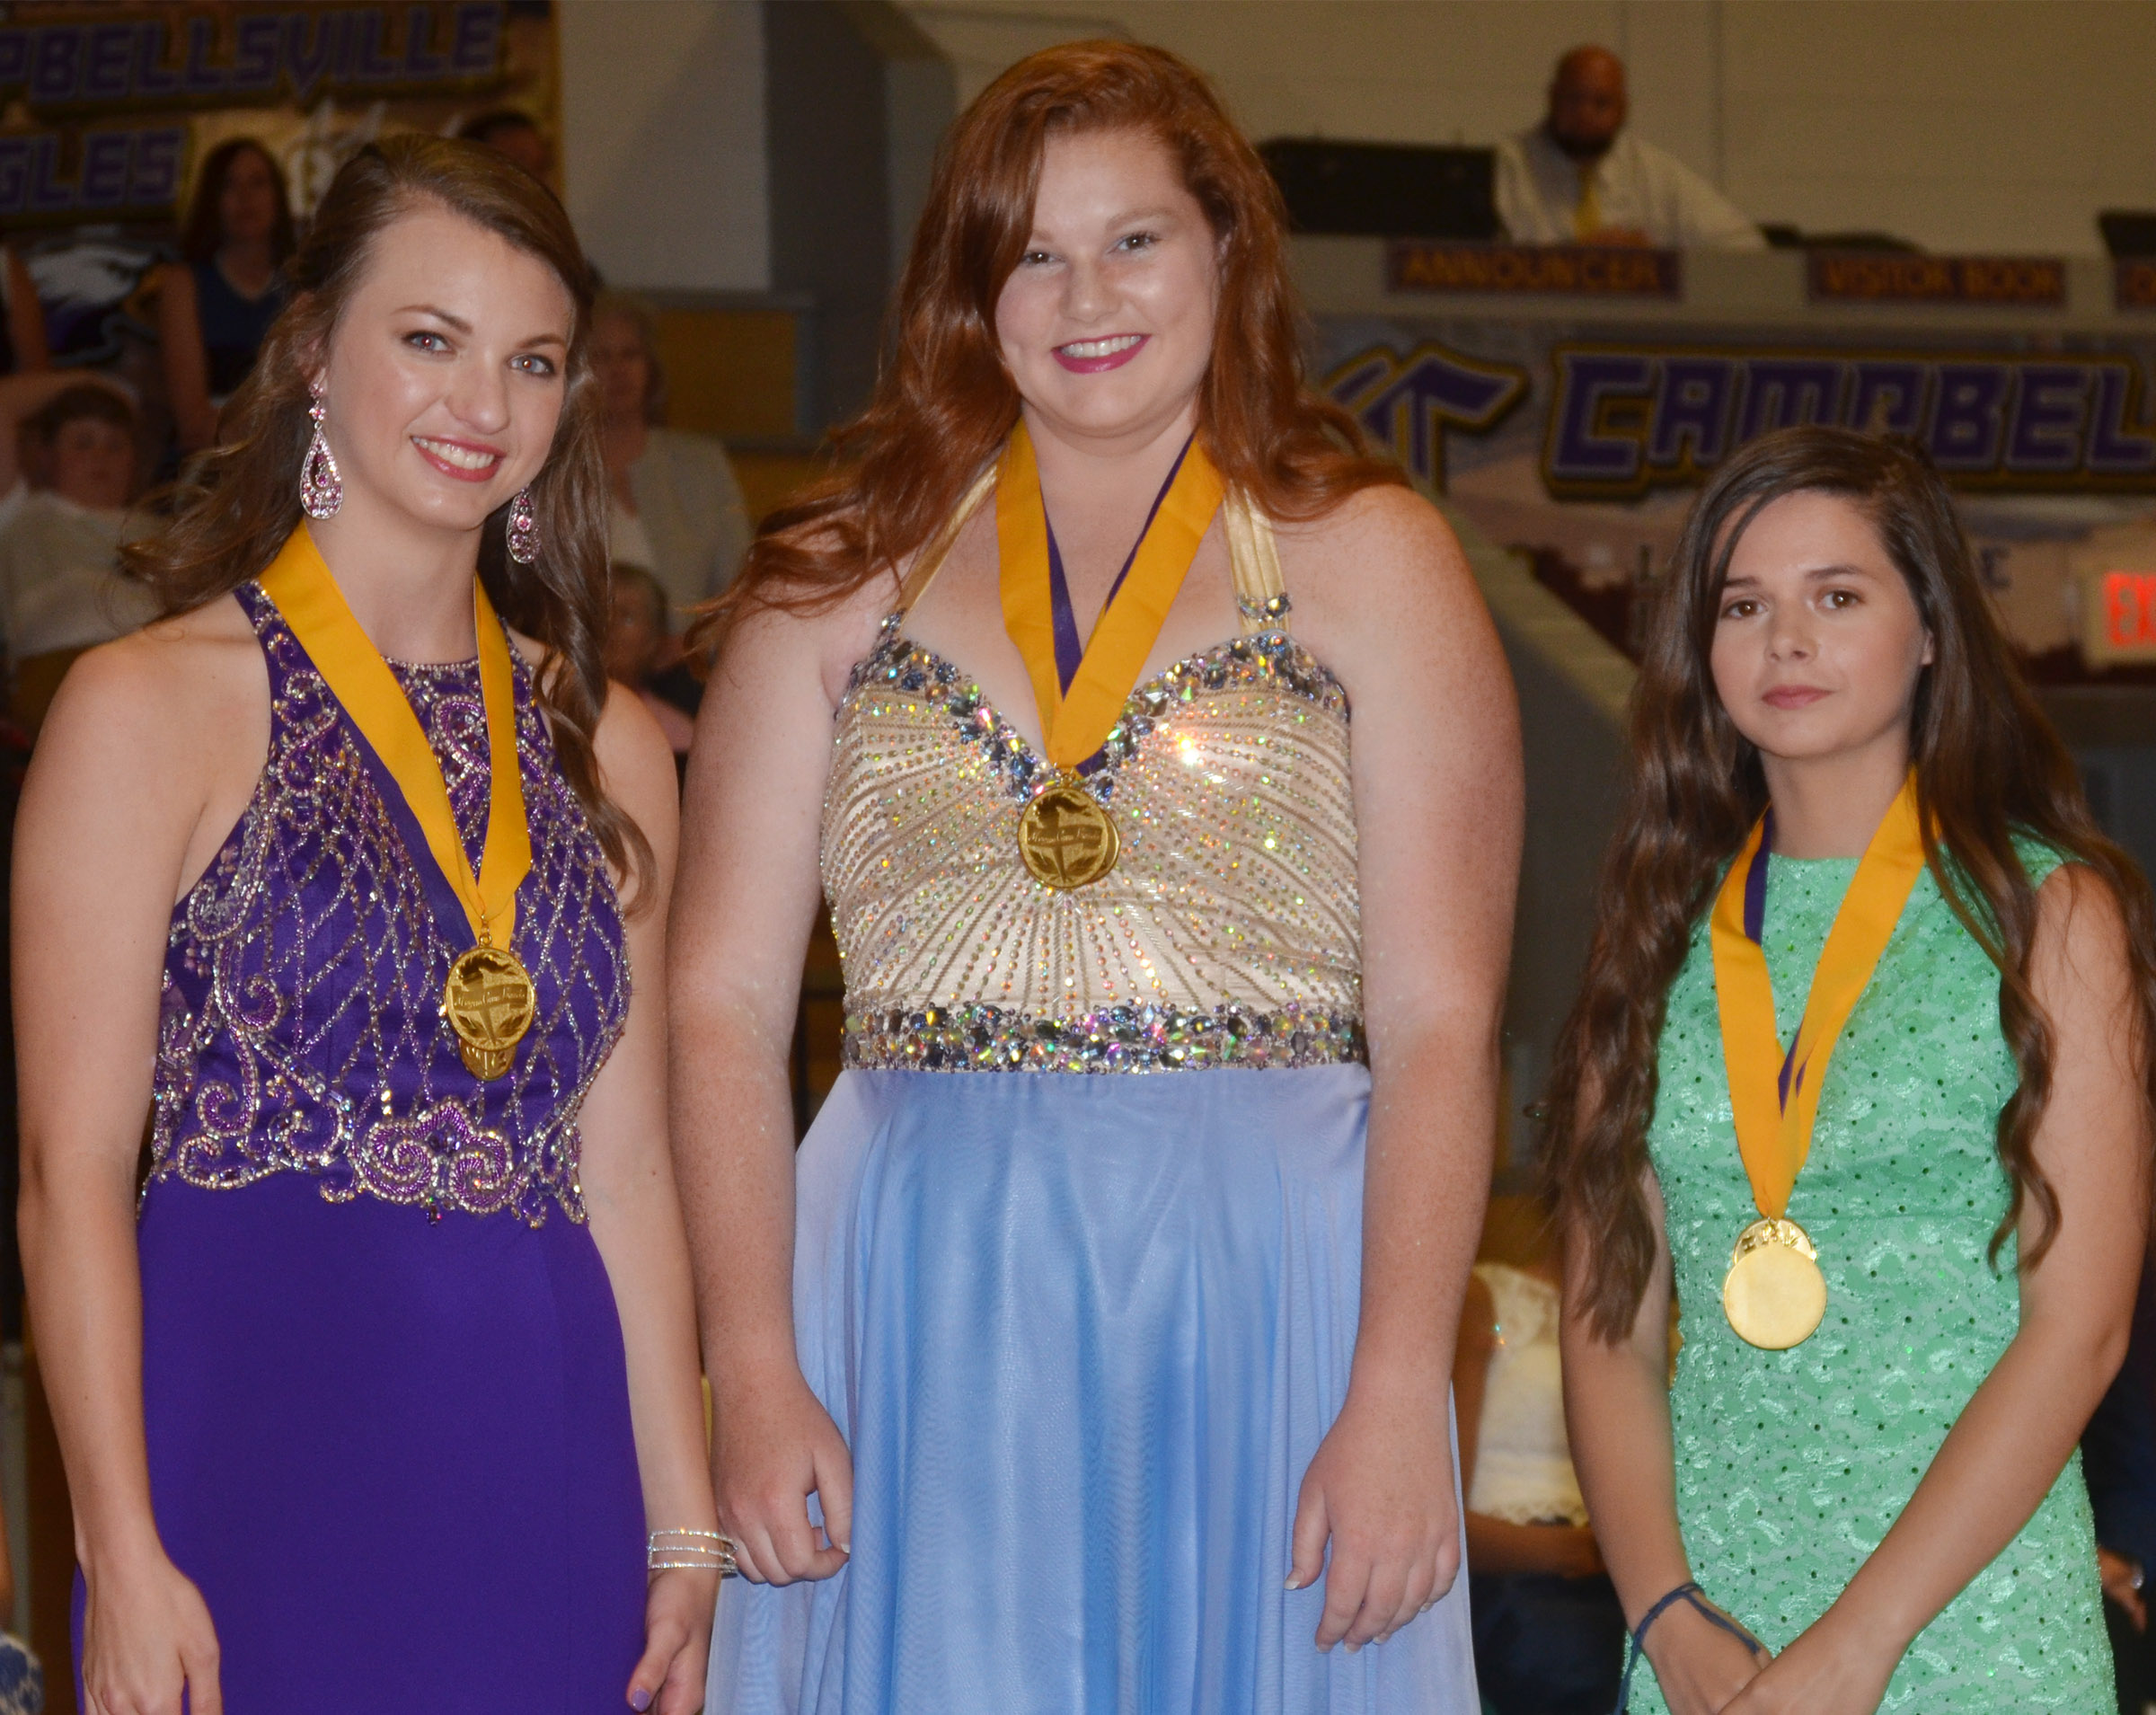 Receiving magna cum laude honors are, from left, Caylie Blair, Mallory Haley and Shauna Jones.